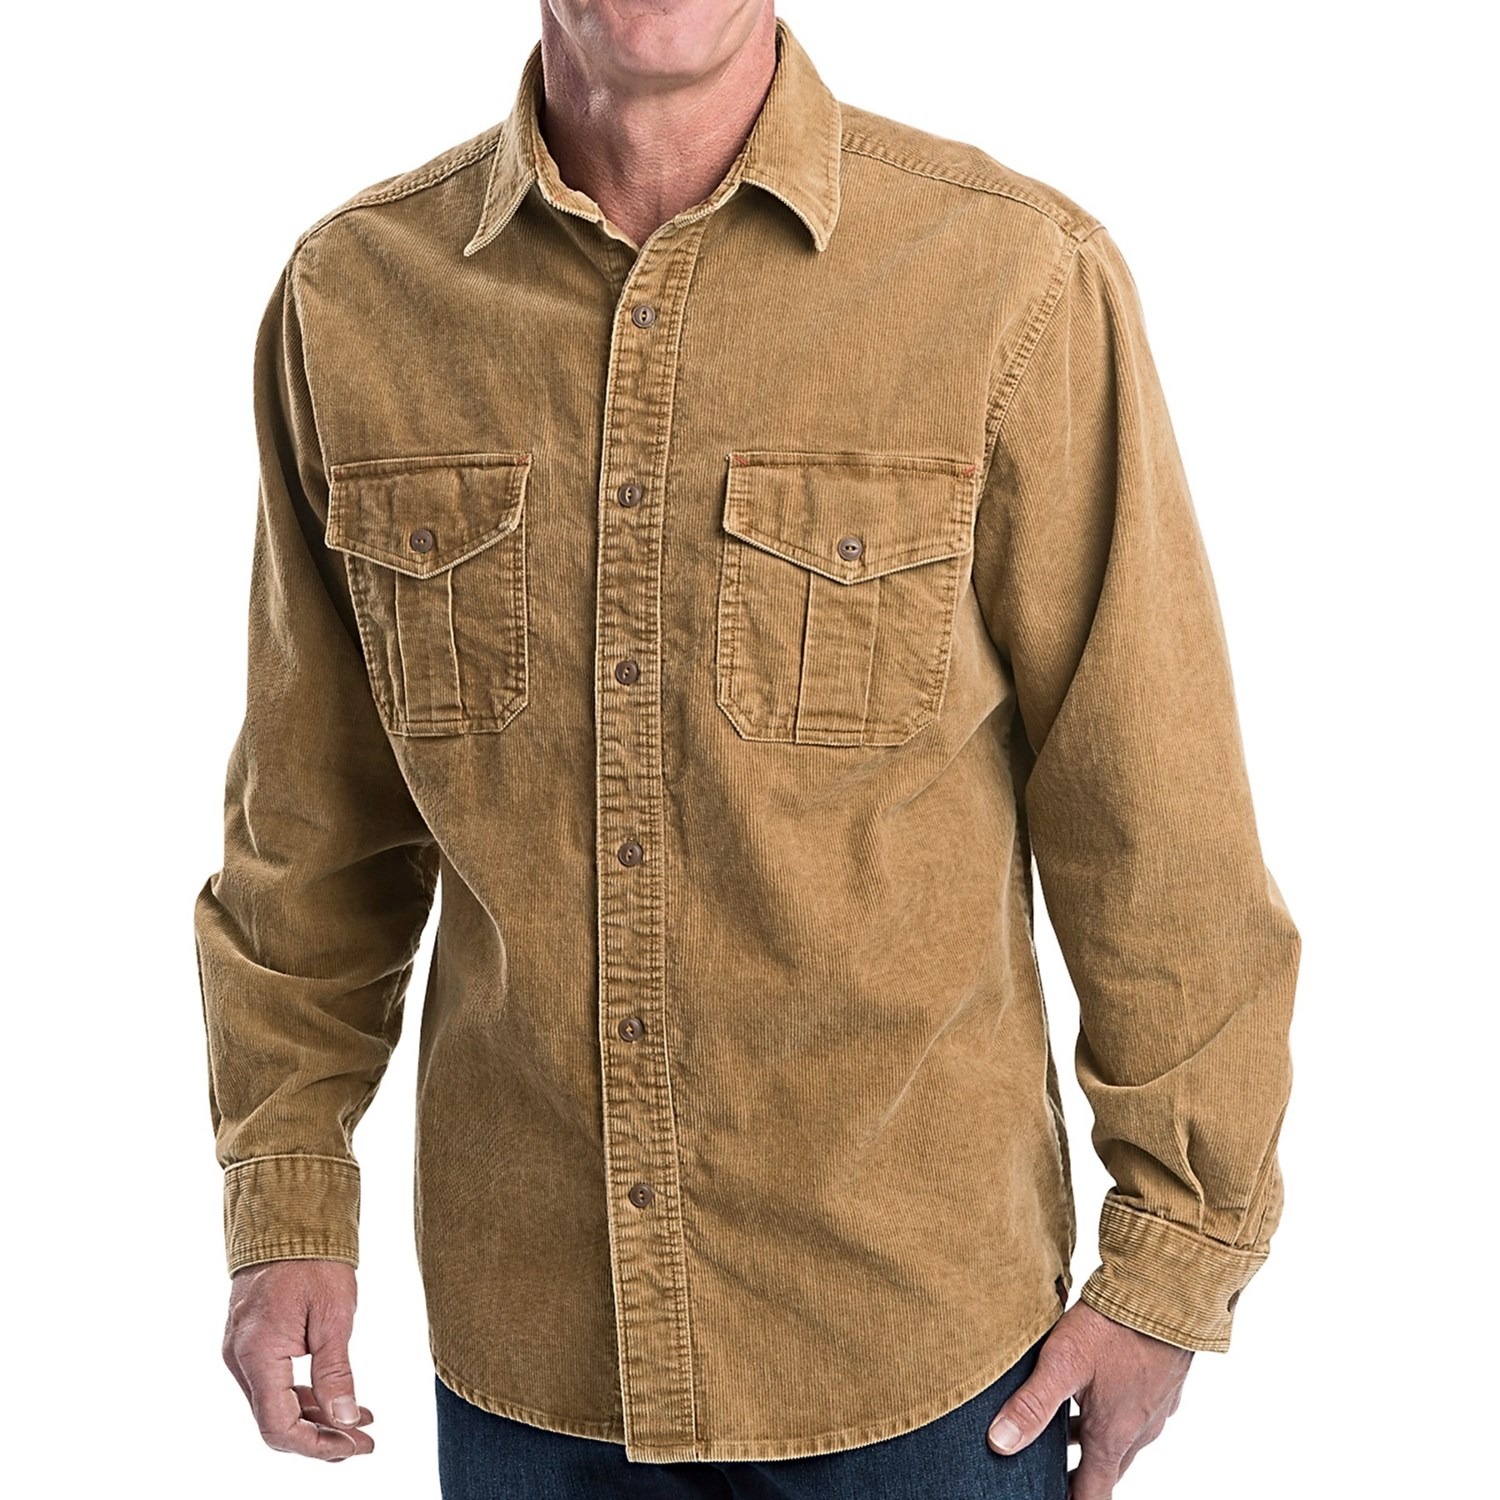 Corduroy Shirt Jacket: Your favorite silhouette, now in the soft corduroy you adore! Appealing seam detail creates the perfect shape and fit. Appealing seam detail creates the perfect shape and fit. Flap pockets at chest, long sleeves with button and cuff.